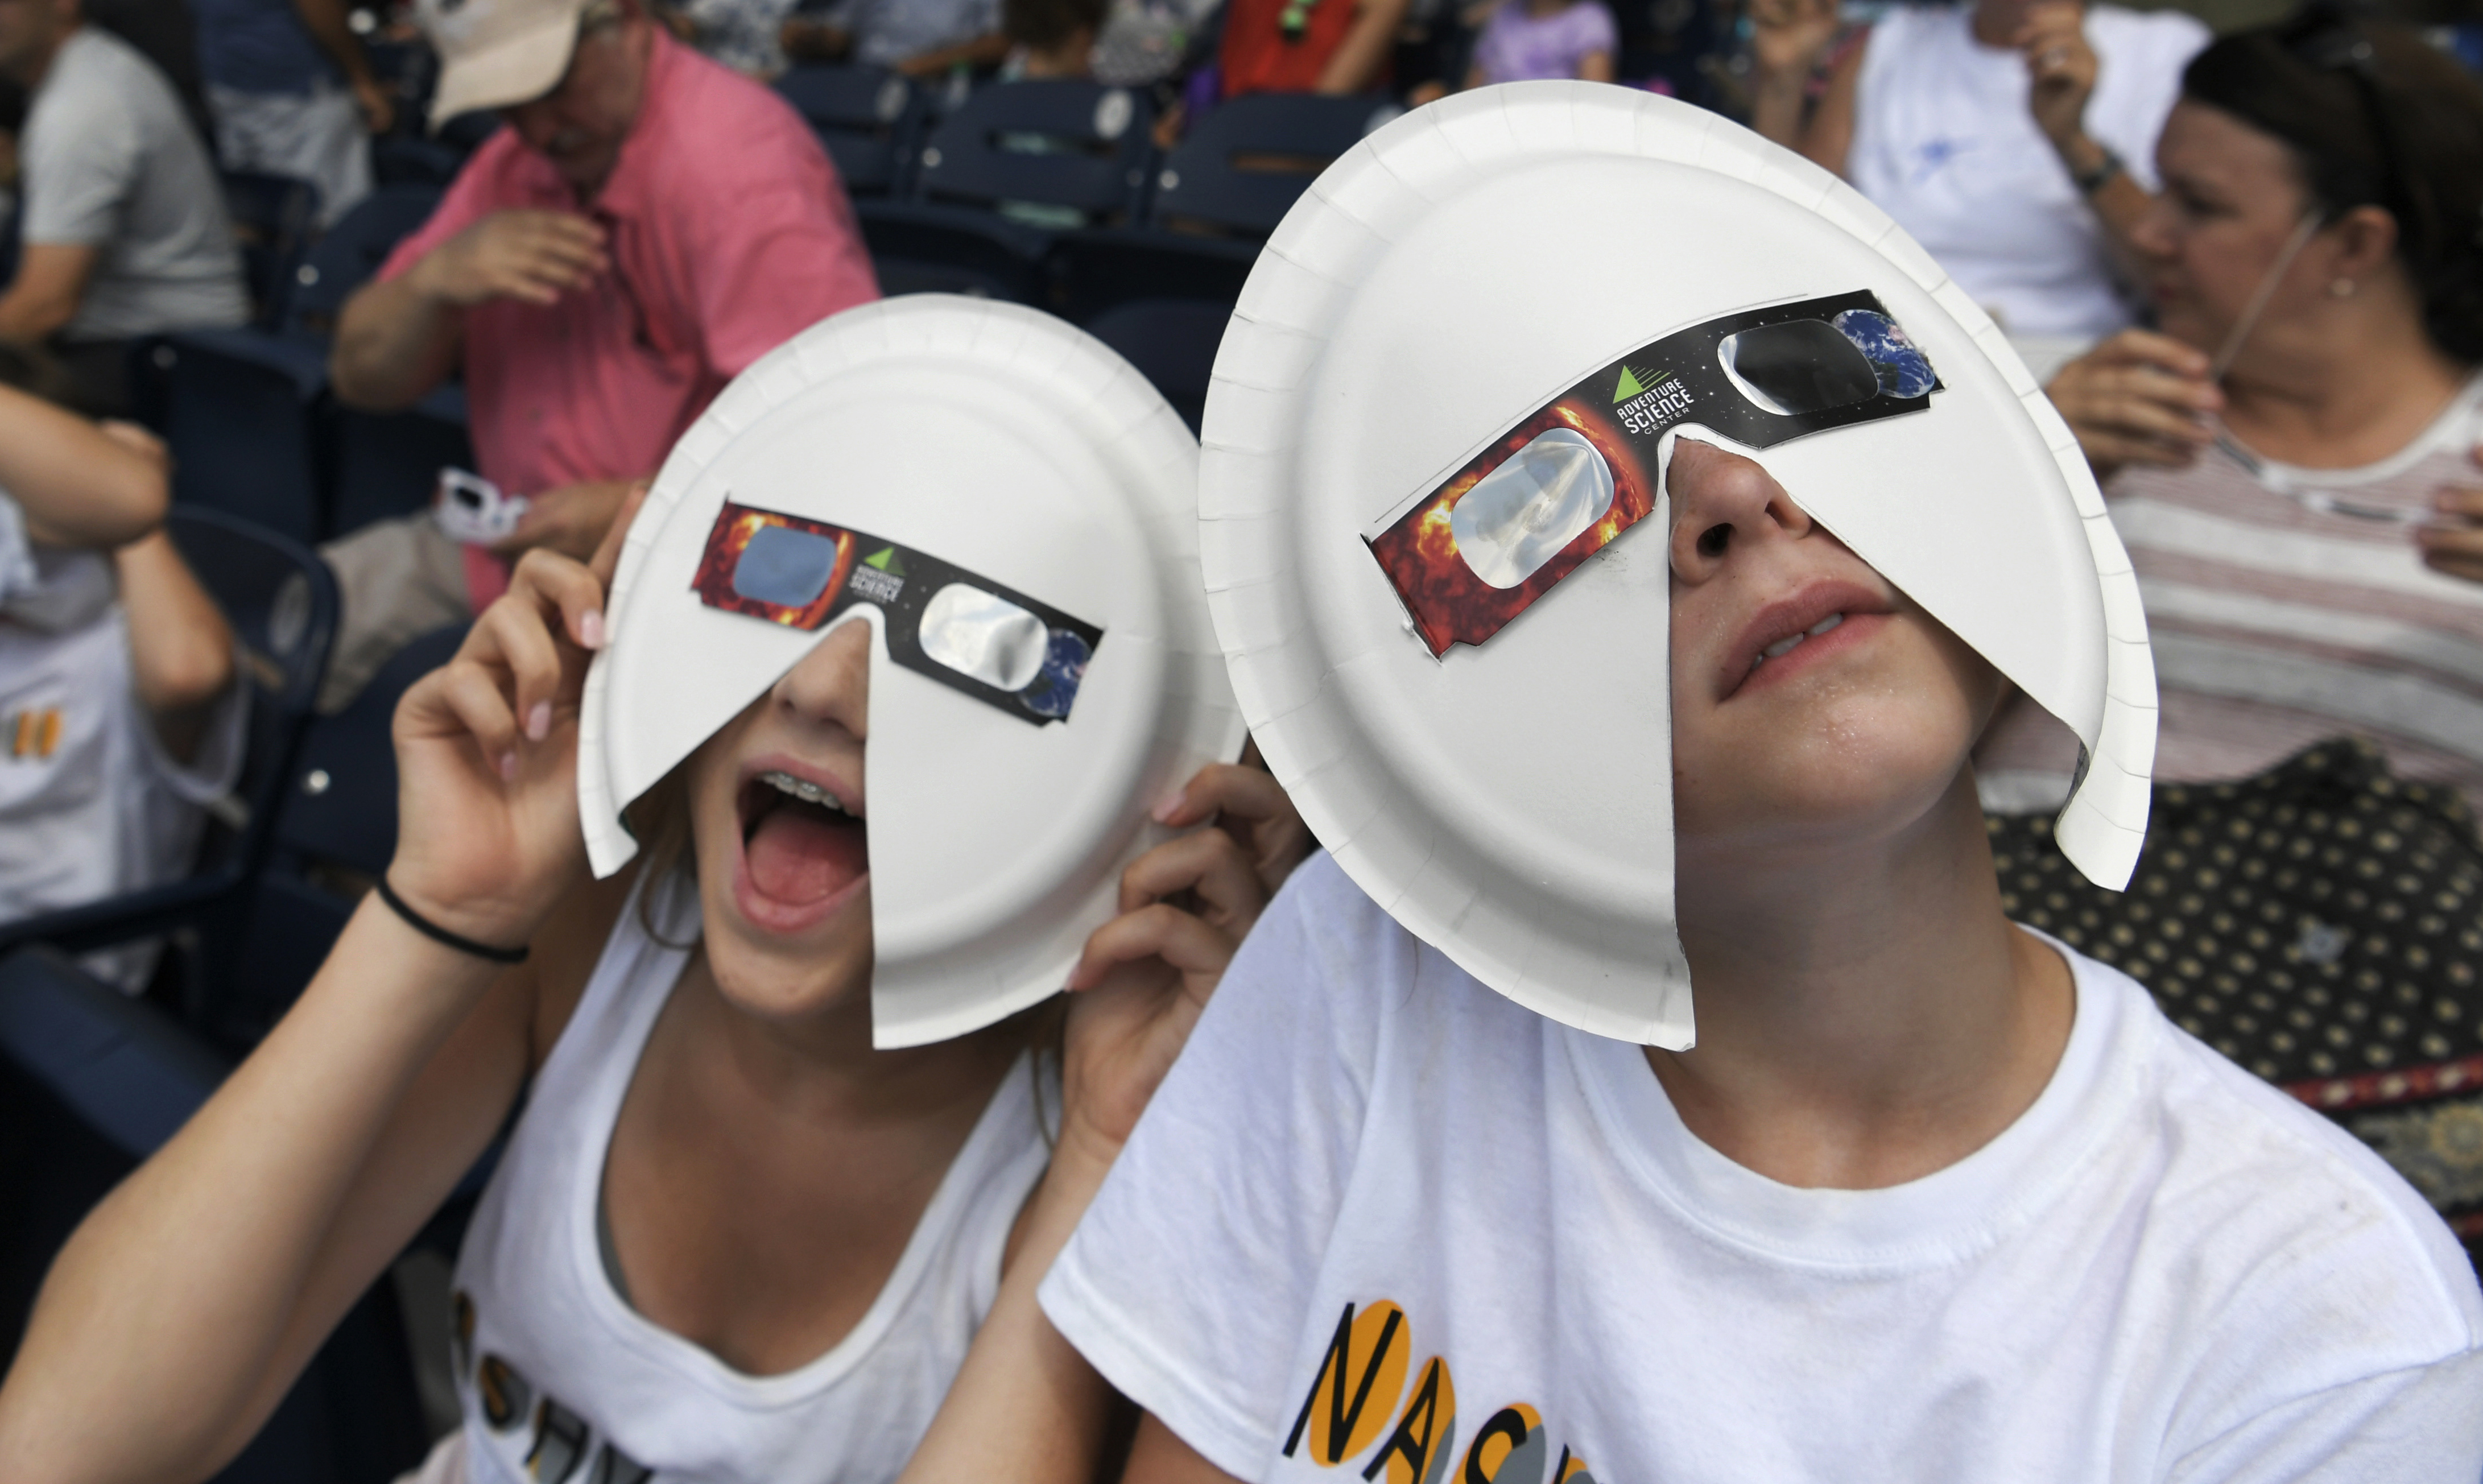 Two people wear makeshift eclipse glasses ahead of the solar eclipse